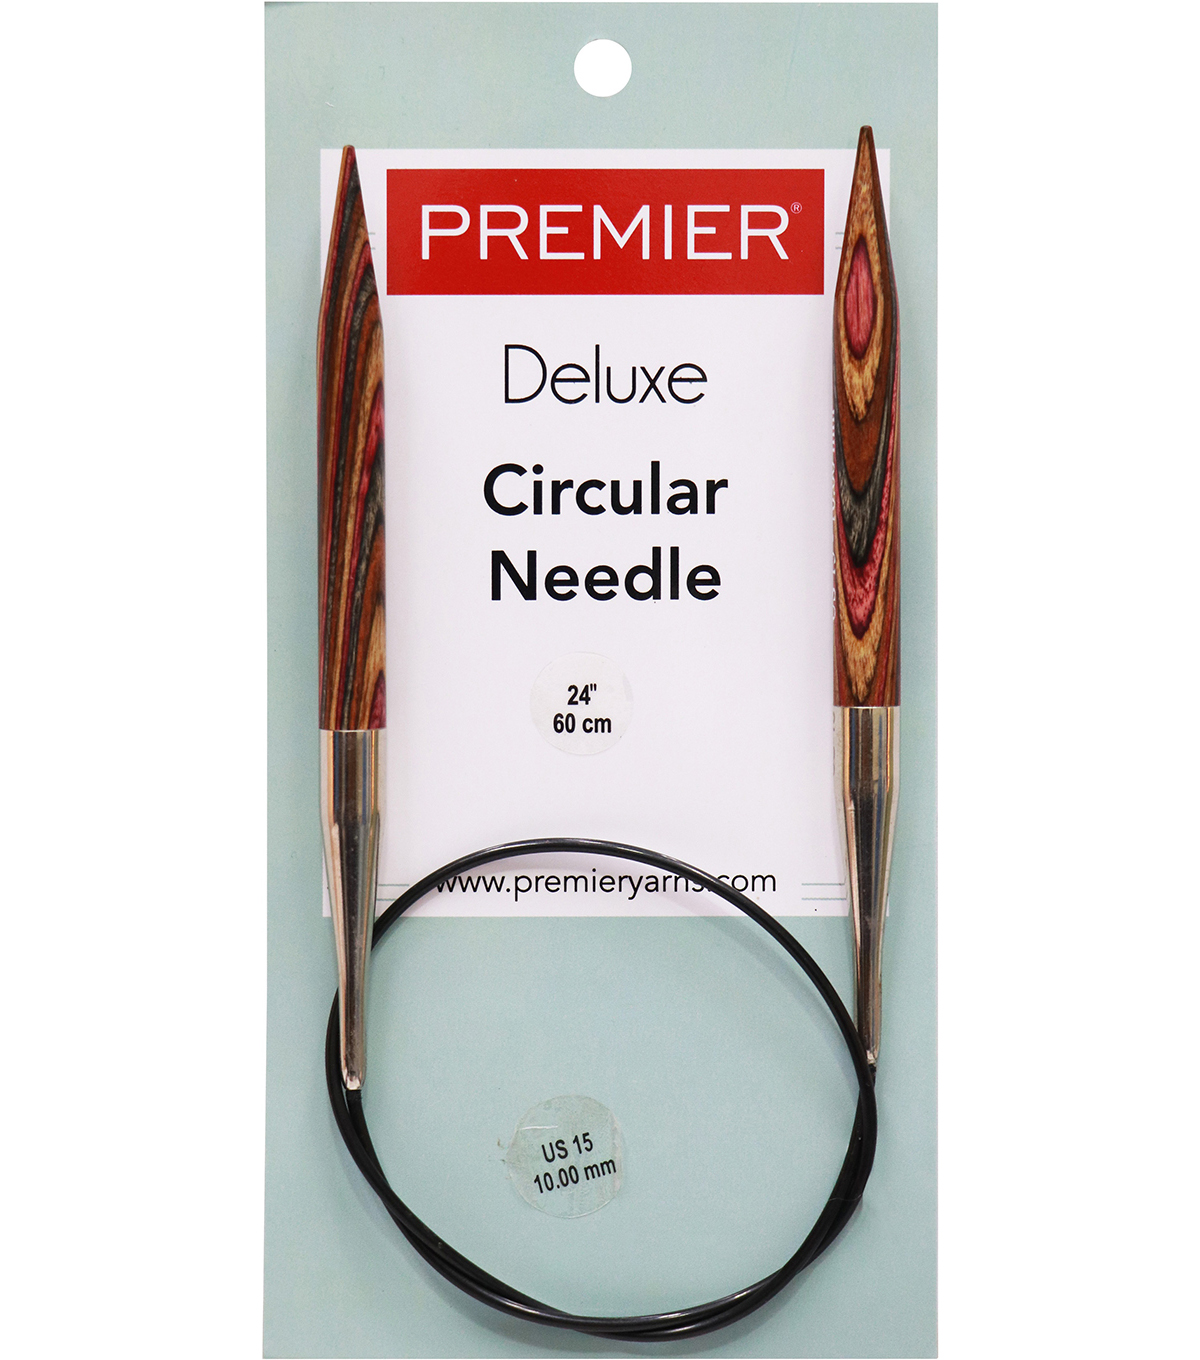 Premier Yarns Fixed Circular Needles 24\u0027\u0027 Size 15/10.0mm